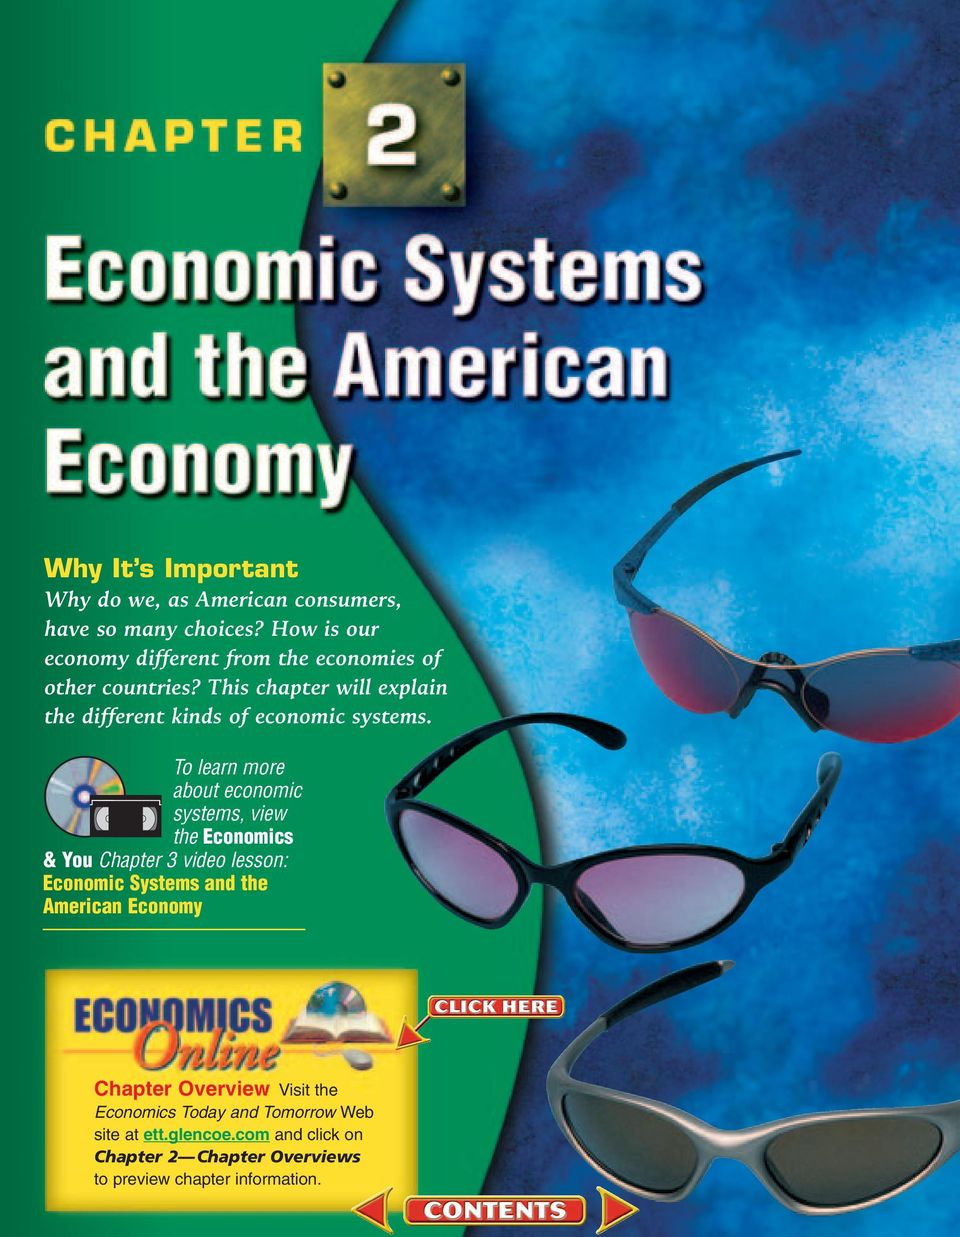 To learn more about economic systems, view the Economics